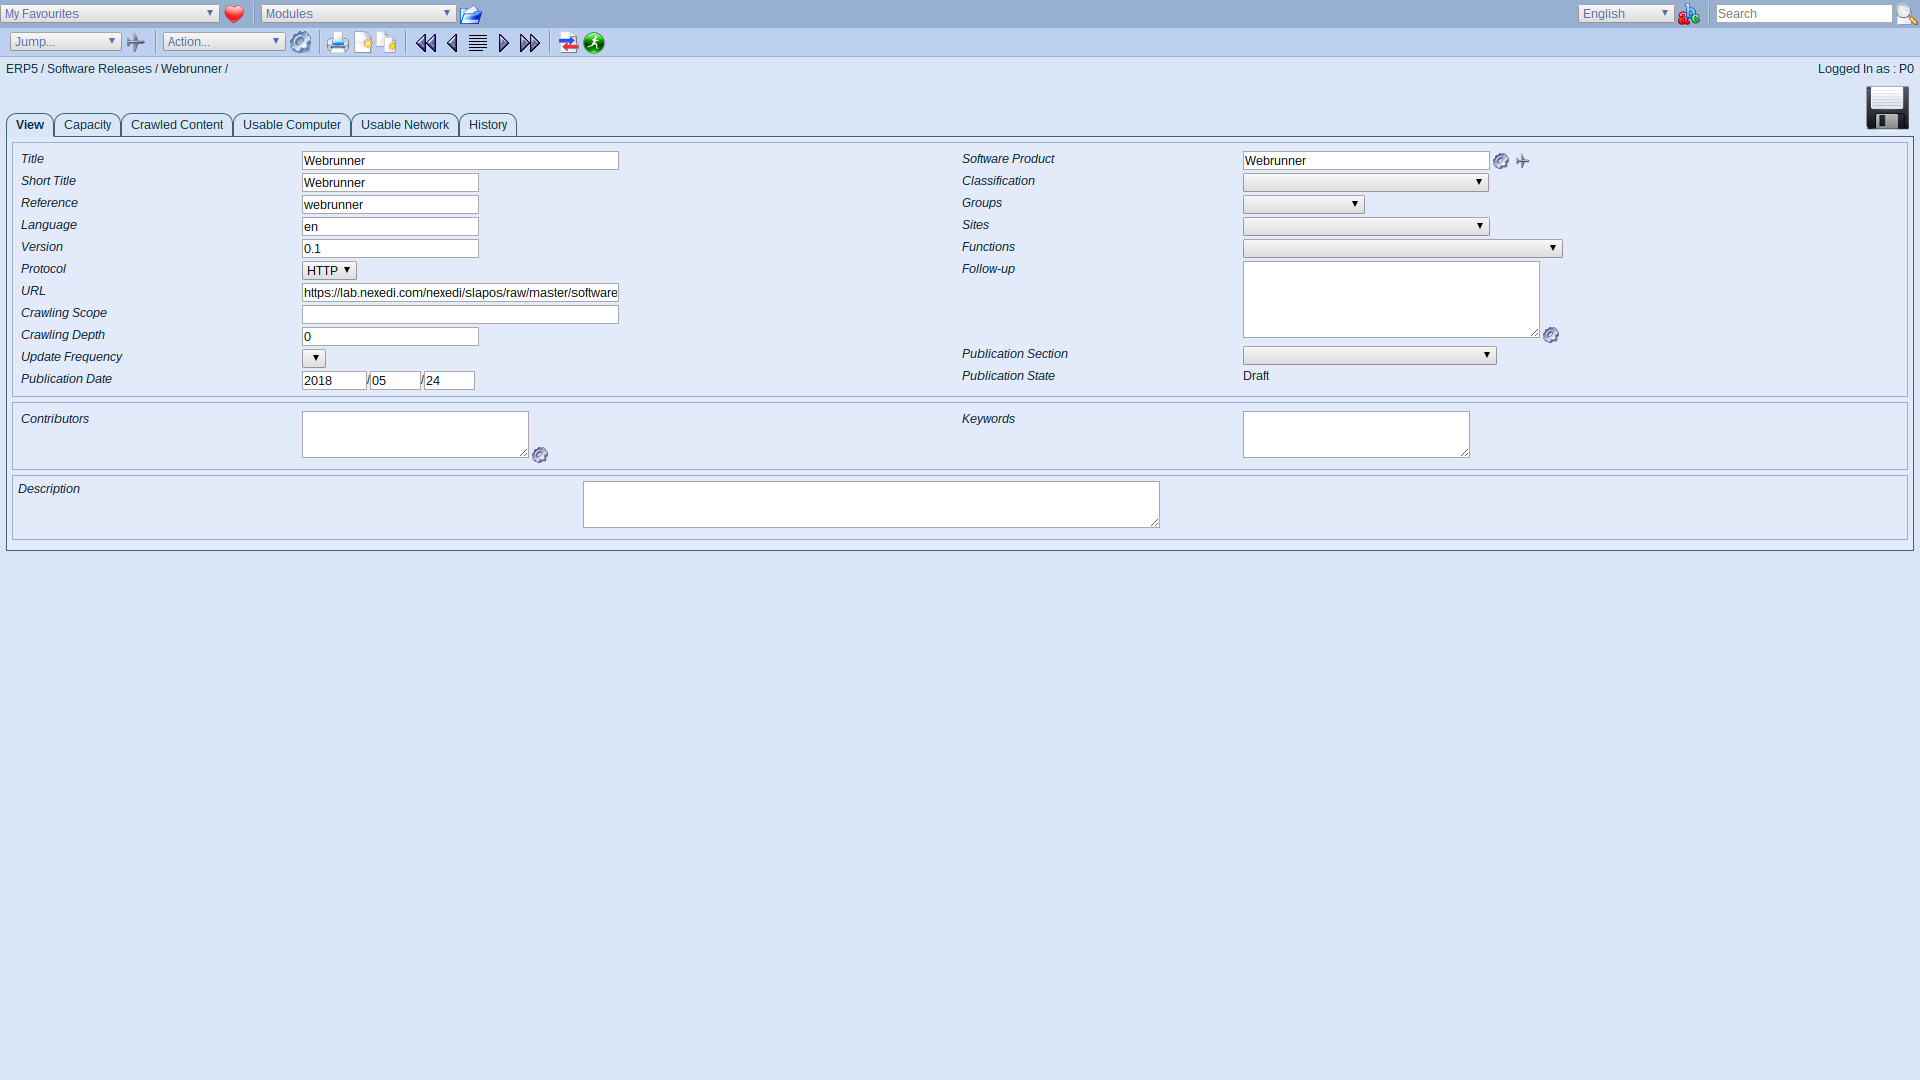 ERP5 Interface - Administrator Define Software Release Webrunner